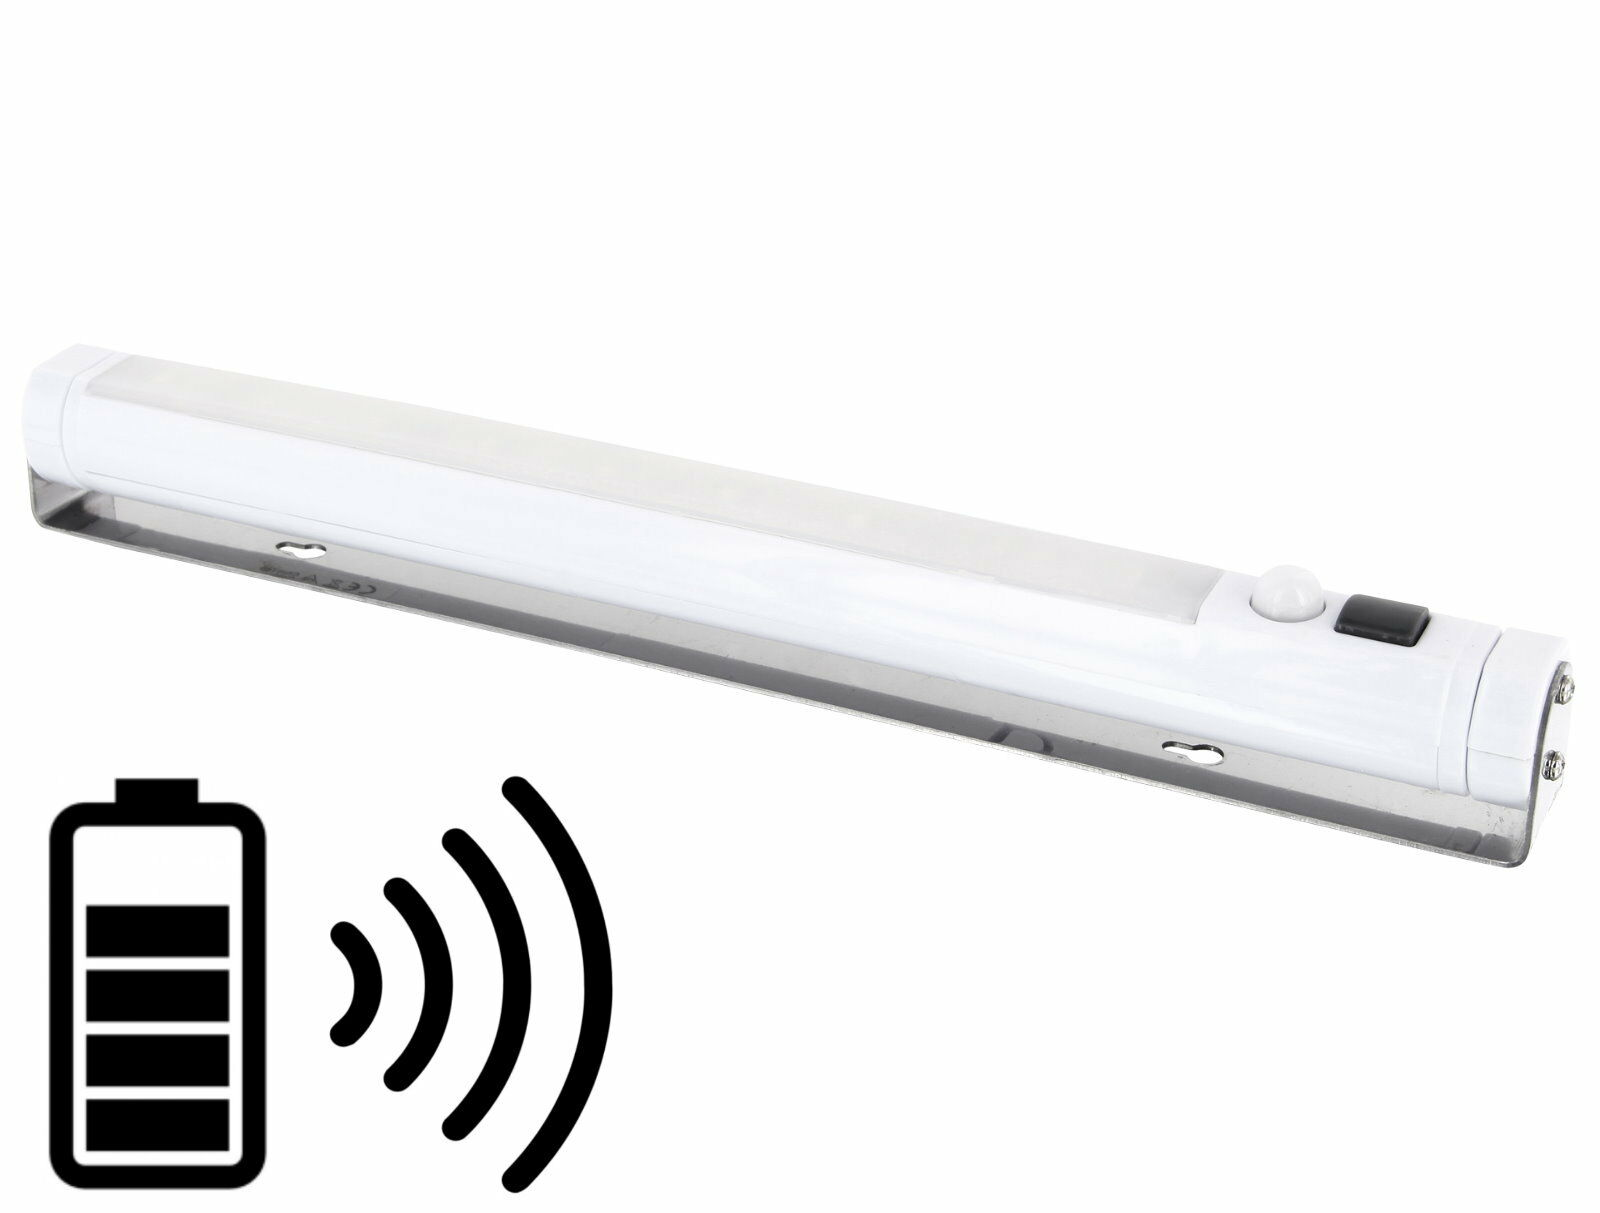 led leuchte mit bewegungsmelder schwenkbar 360 batterie. Black Bedroom Furniture Sets. Home Design Ideas